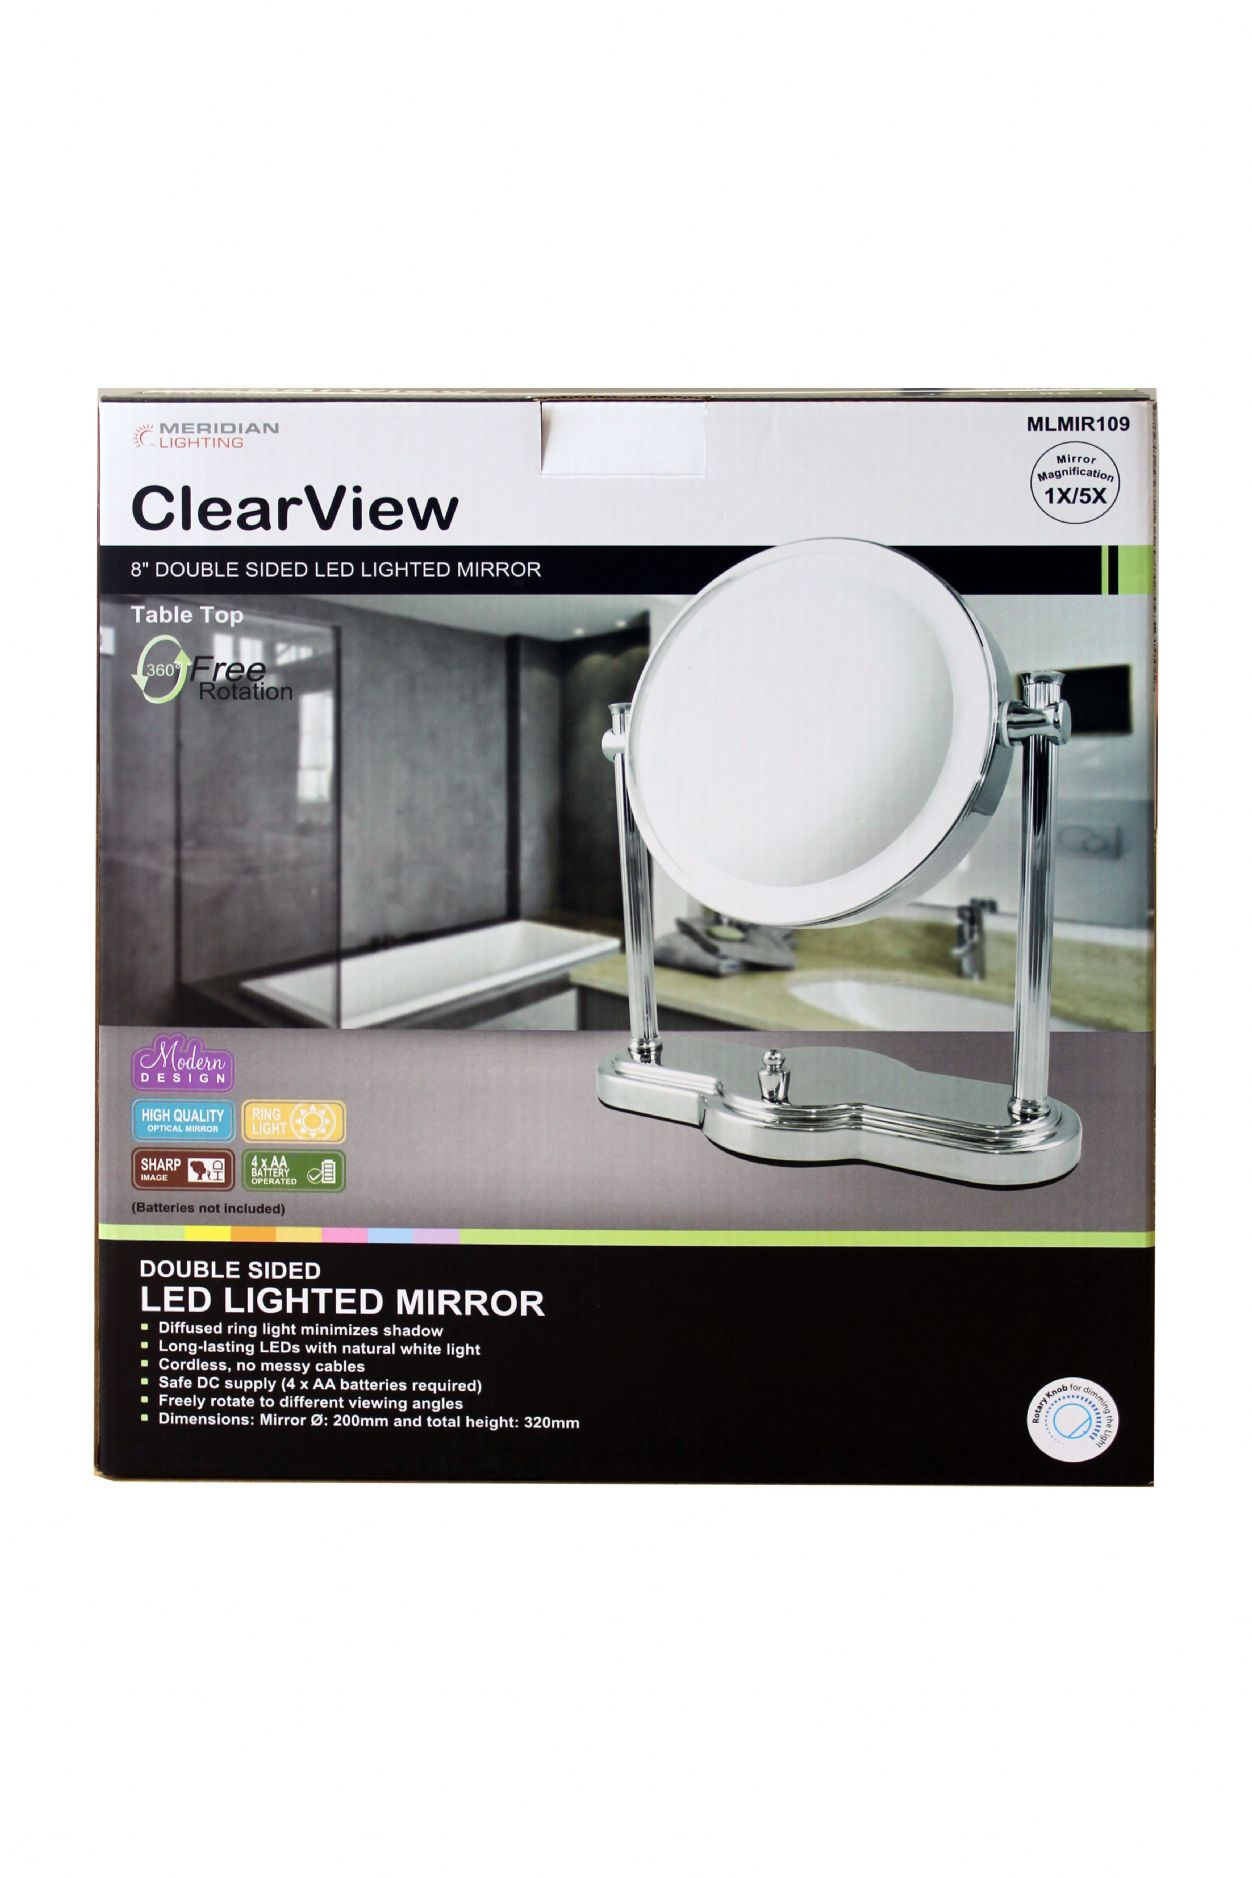 clearview mlmir109 led mirror. Black Bedroom Furniture Sets. Home Design Ideas